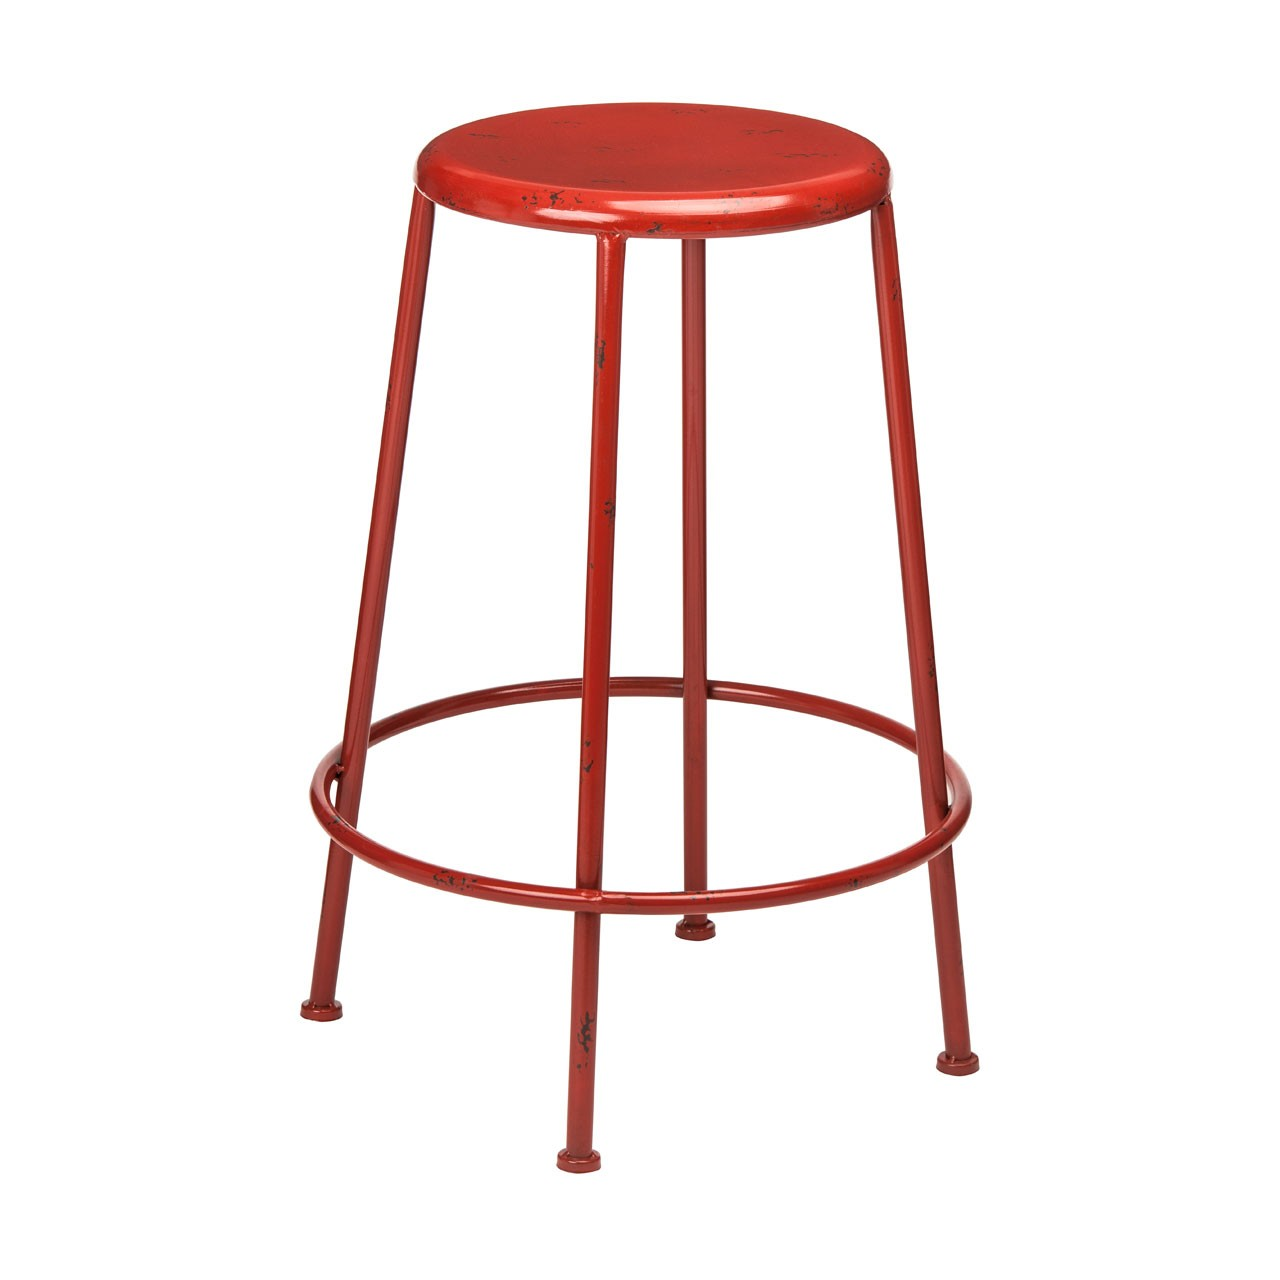 Artisan Stool Red Stool Has Chipped Paint Detail Wonderful